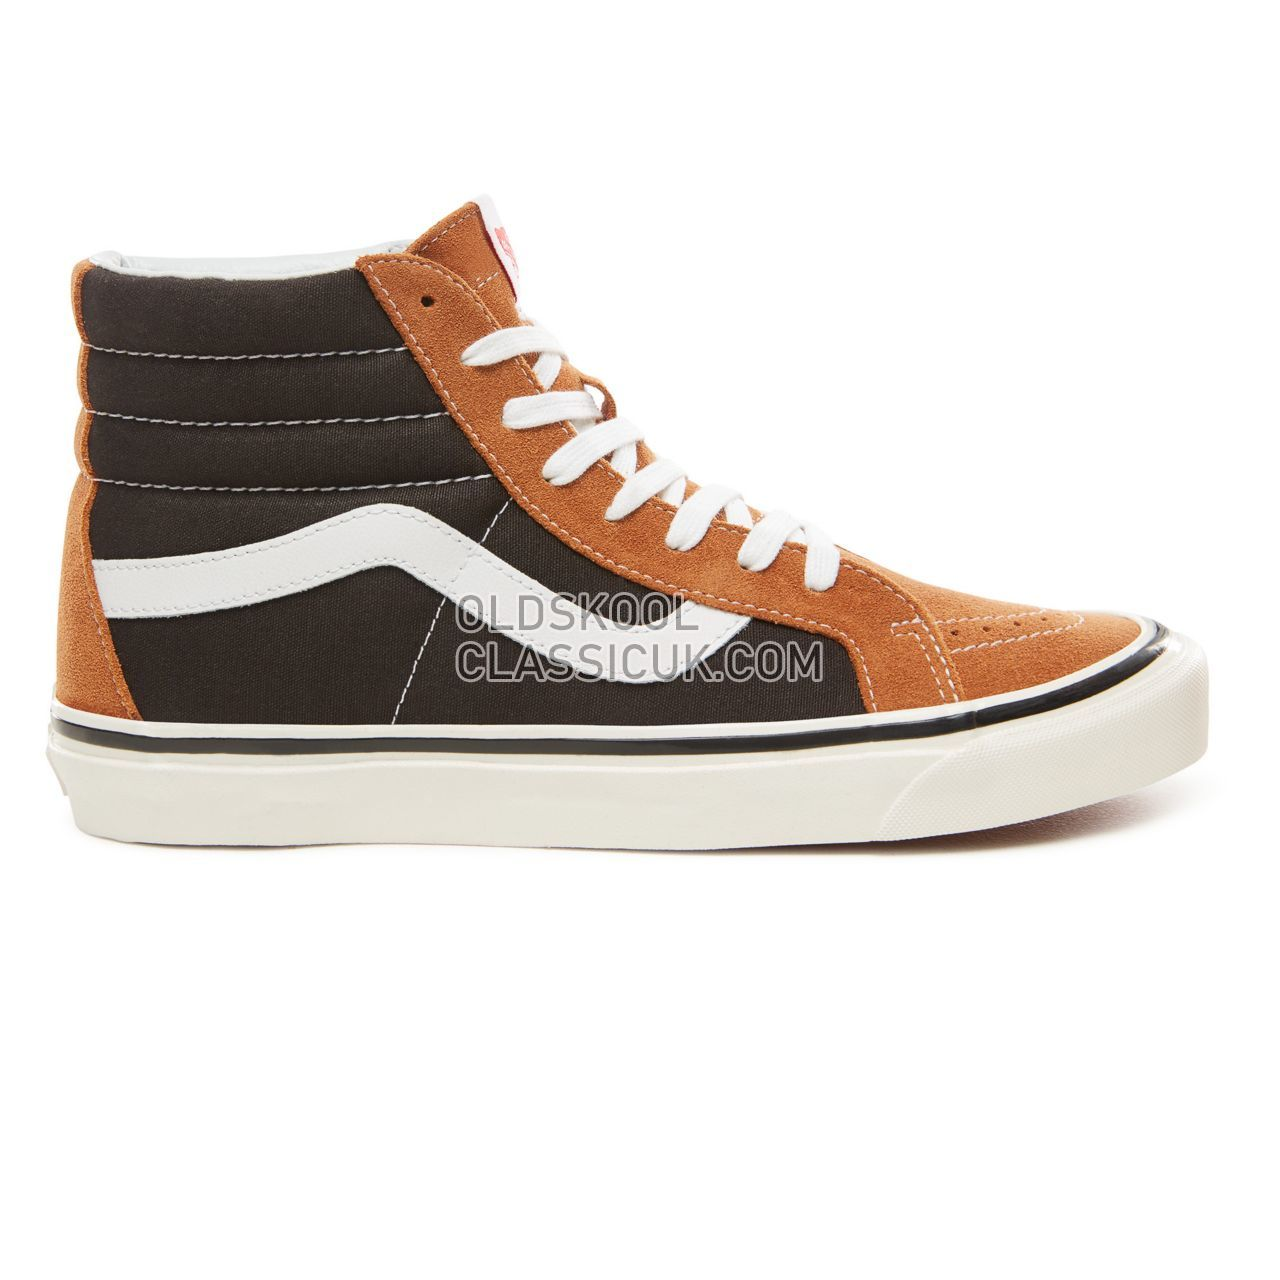 Vans Anaheim Factory Sk8-Hi 38 Dx Sneakers Mens (Anaheim Factory) Og Hart Brown/Og Black VN0A38GFUQ2 Shoes